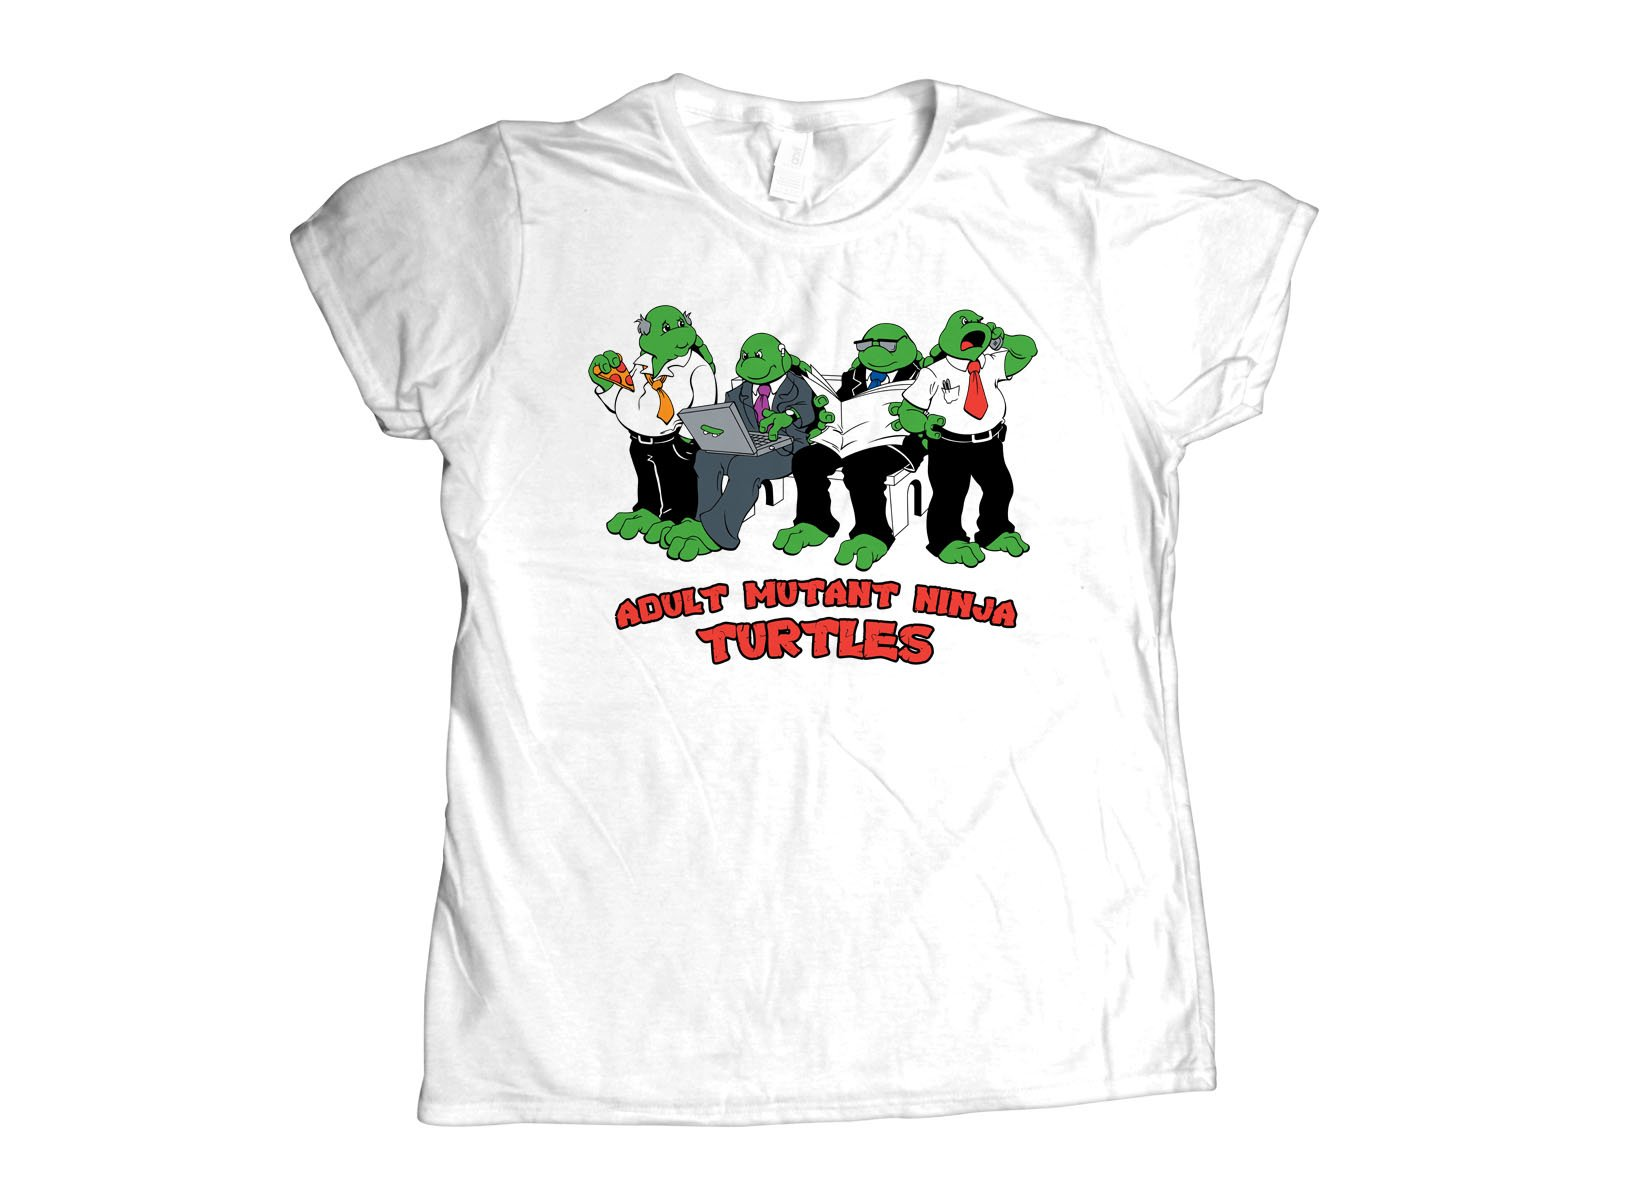 Adult Mutant Ninja Turtles on Womens T-Shirt